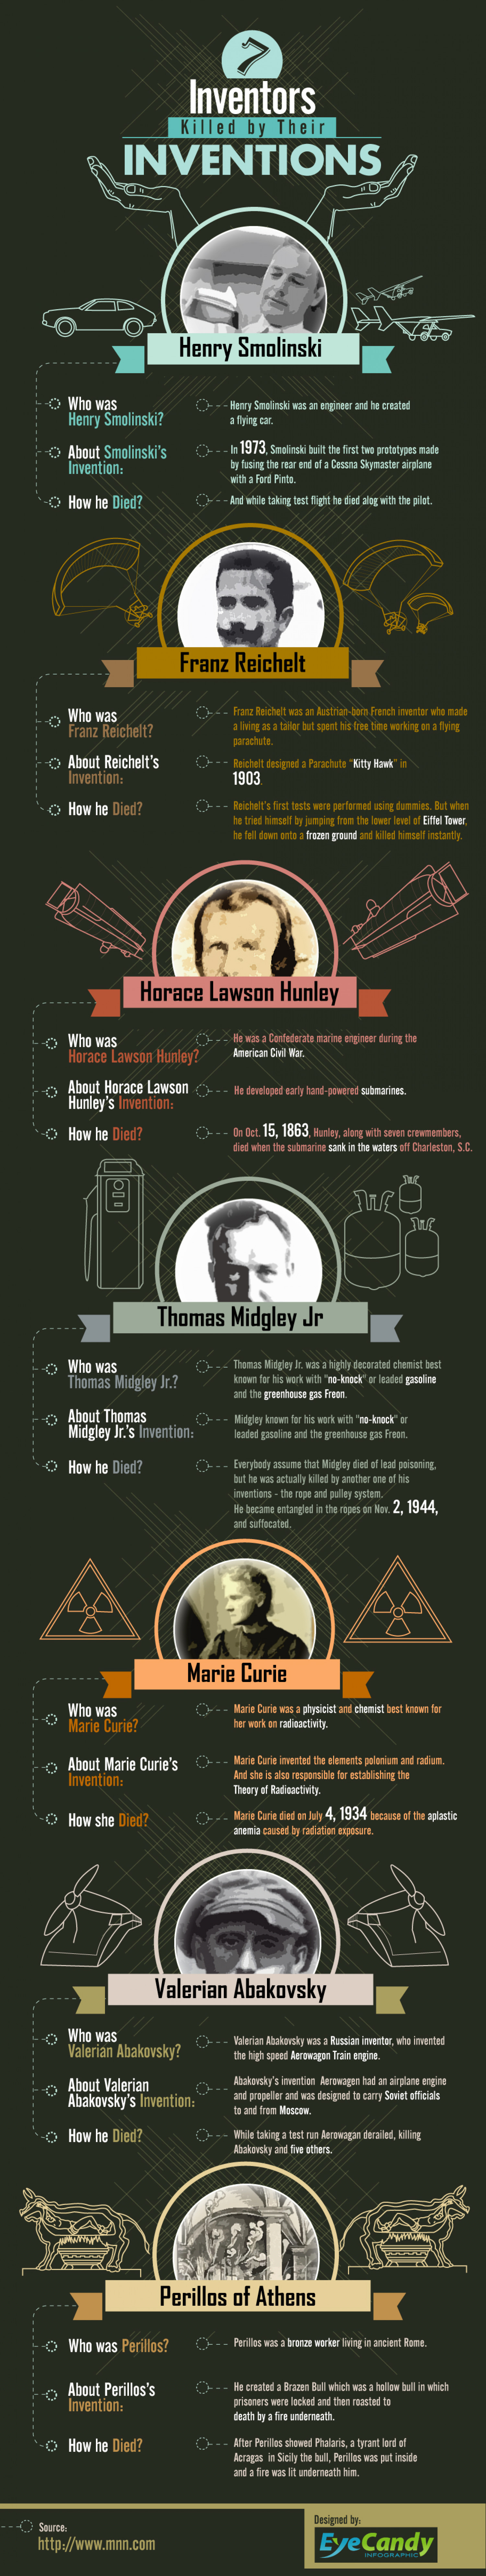 7 Inventors Killed by their Inventions Infographic